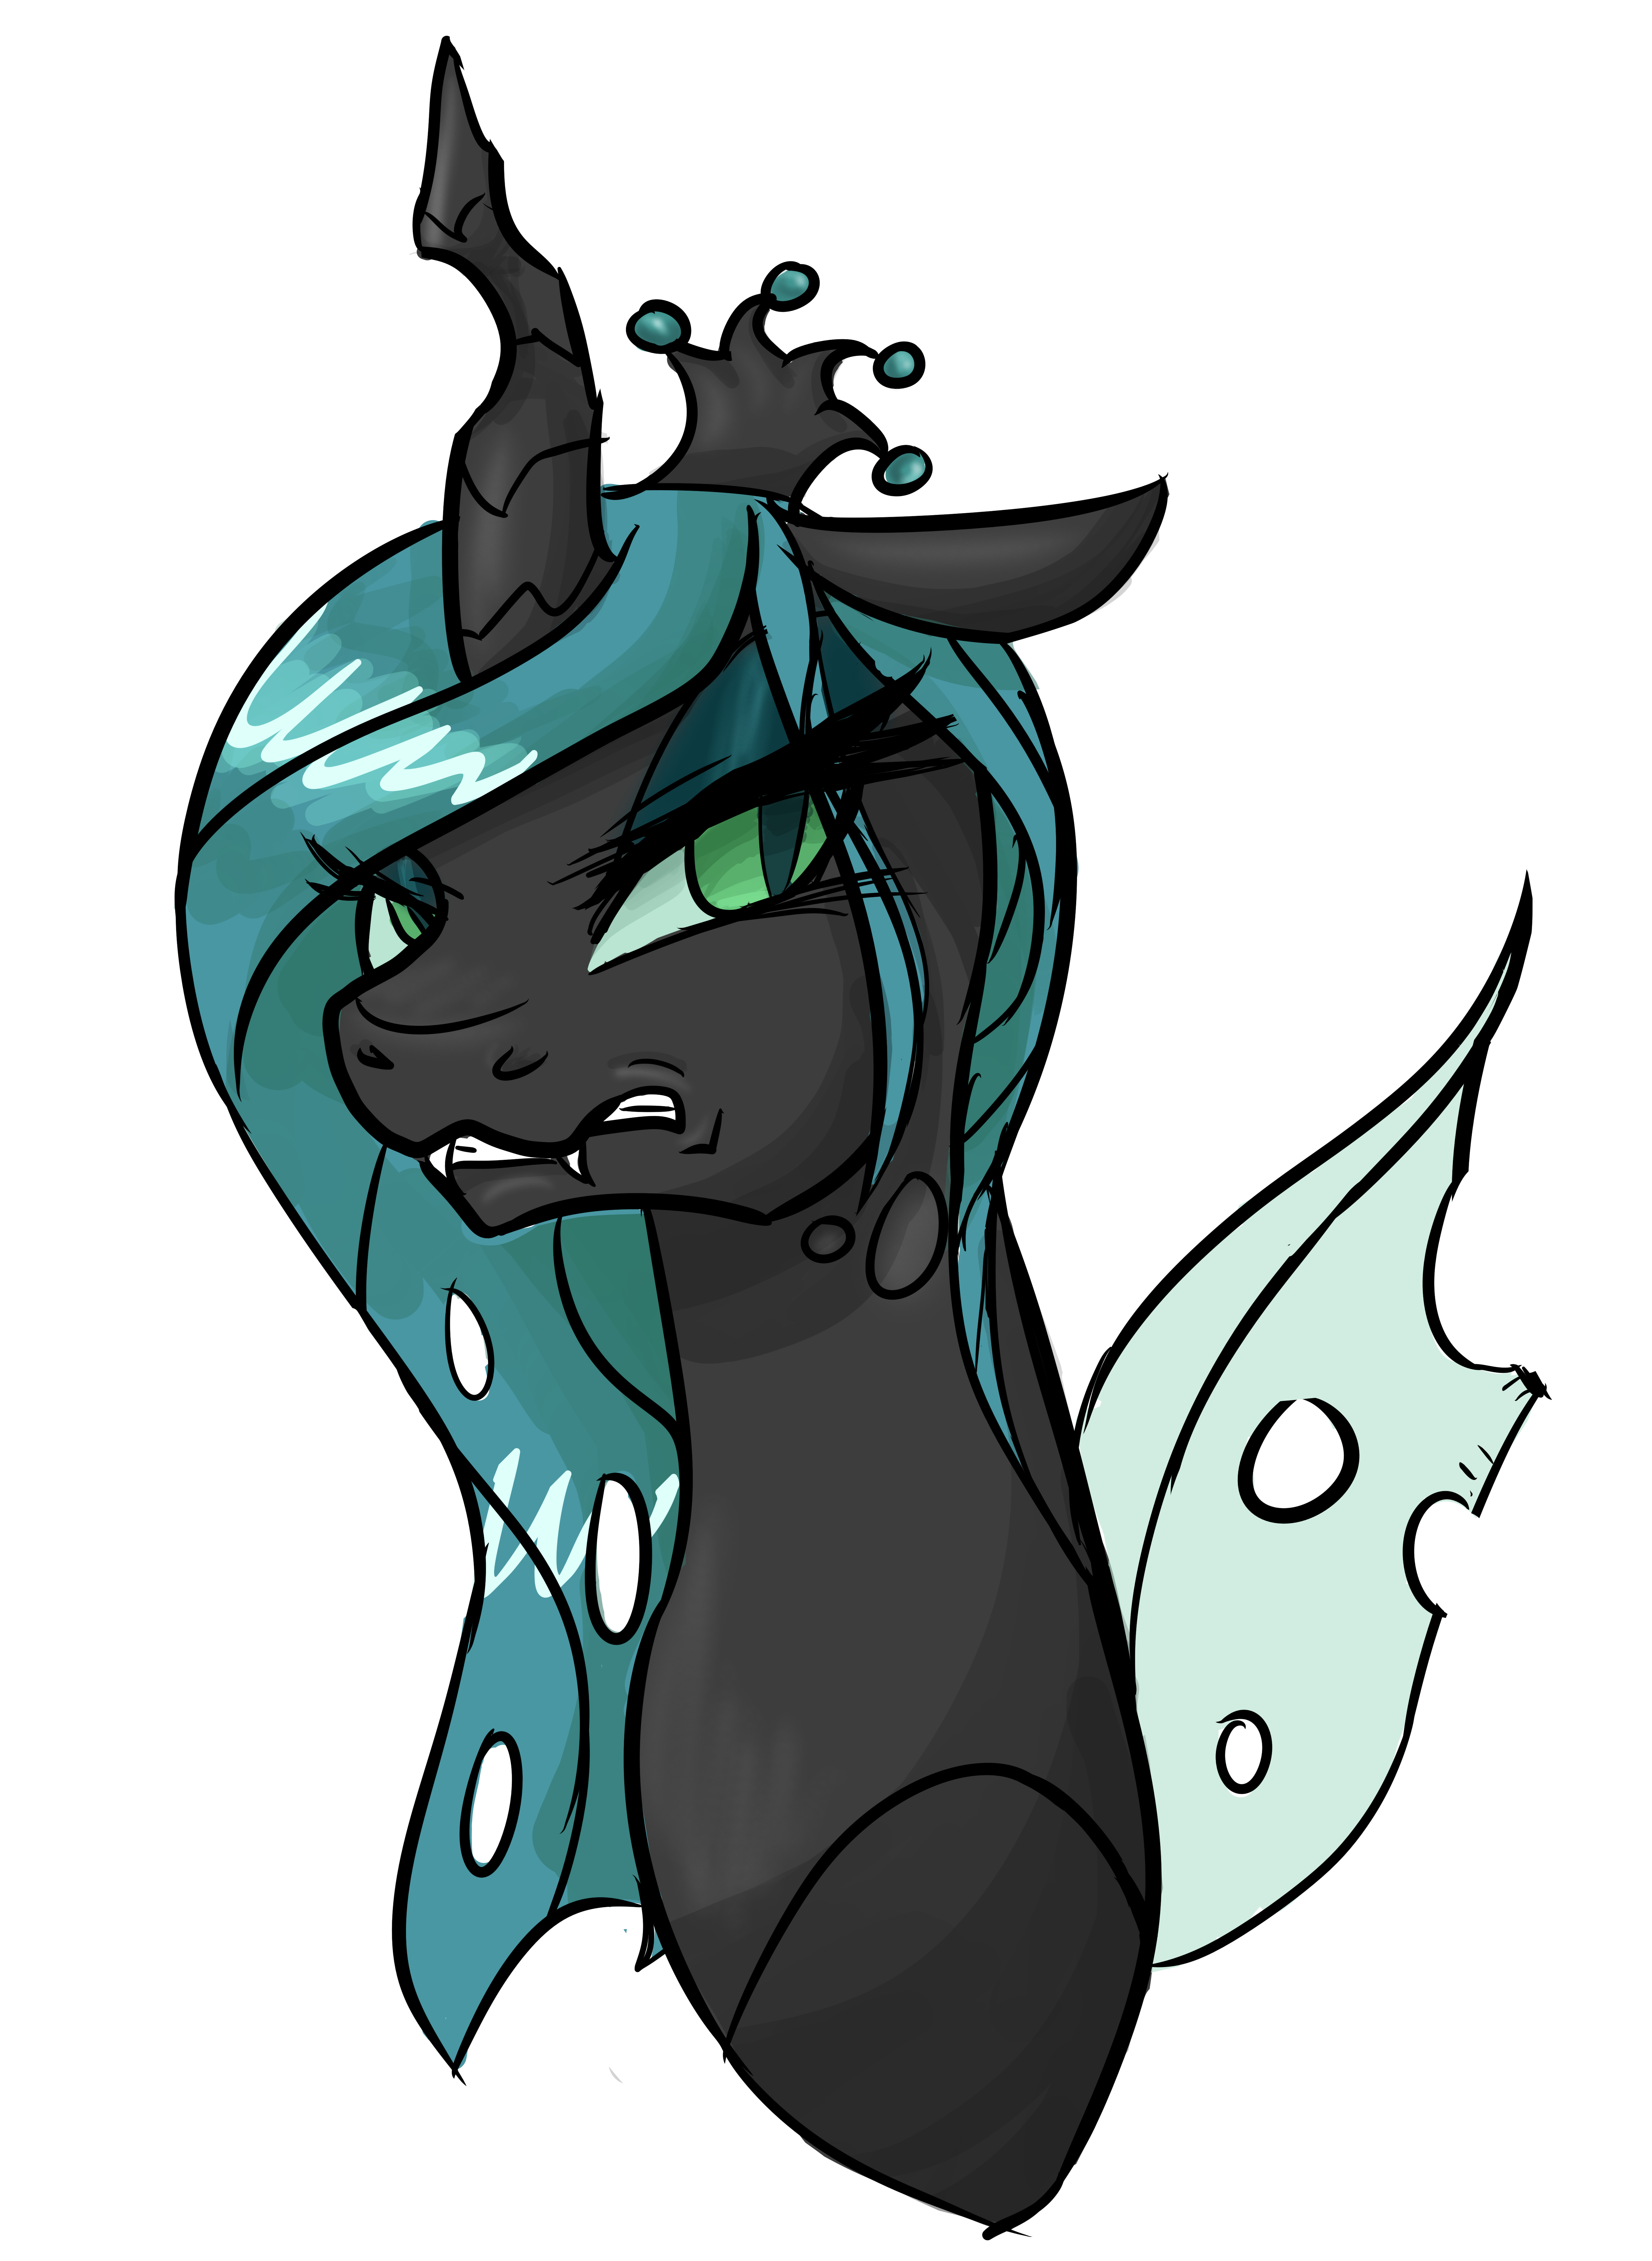 1195259__safe_solo_queenchrysalis_bust_a